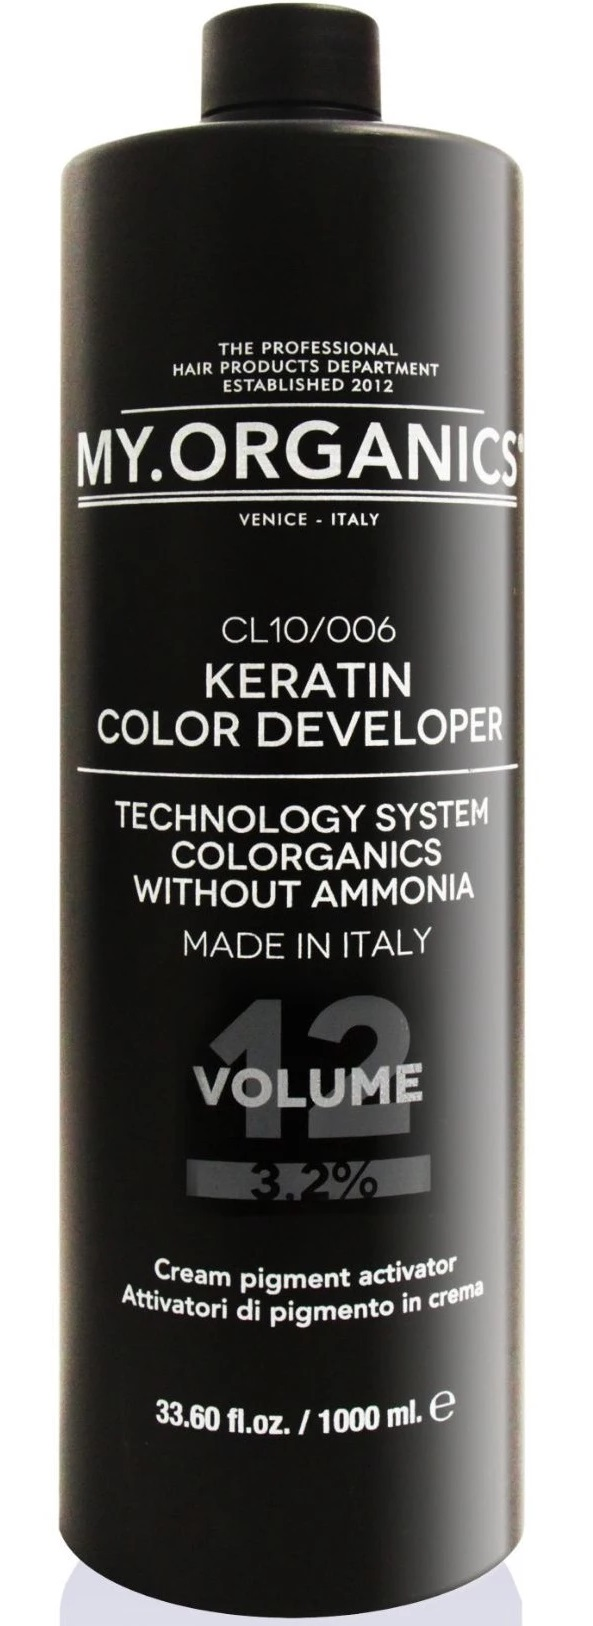 MY.ORGANICS Keratin Color Developer 12Vol 1000ml